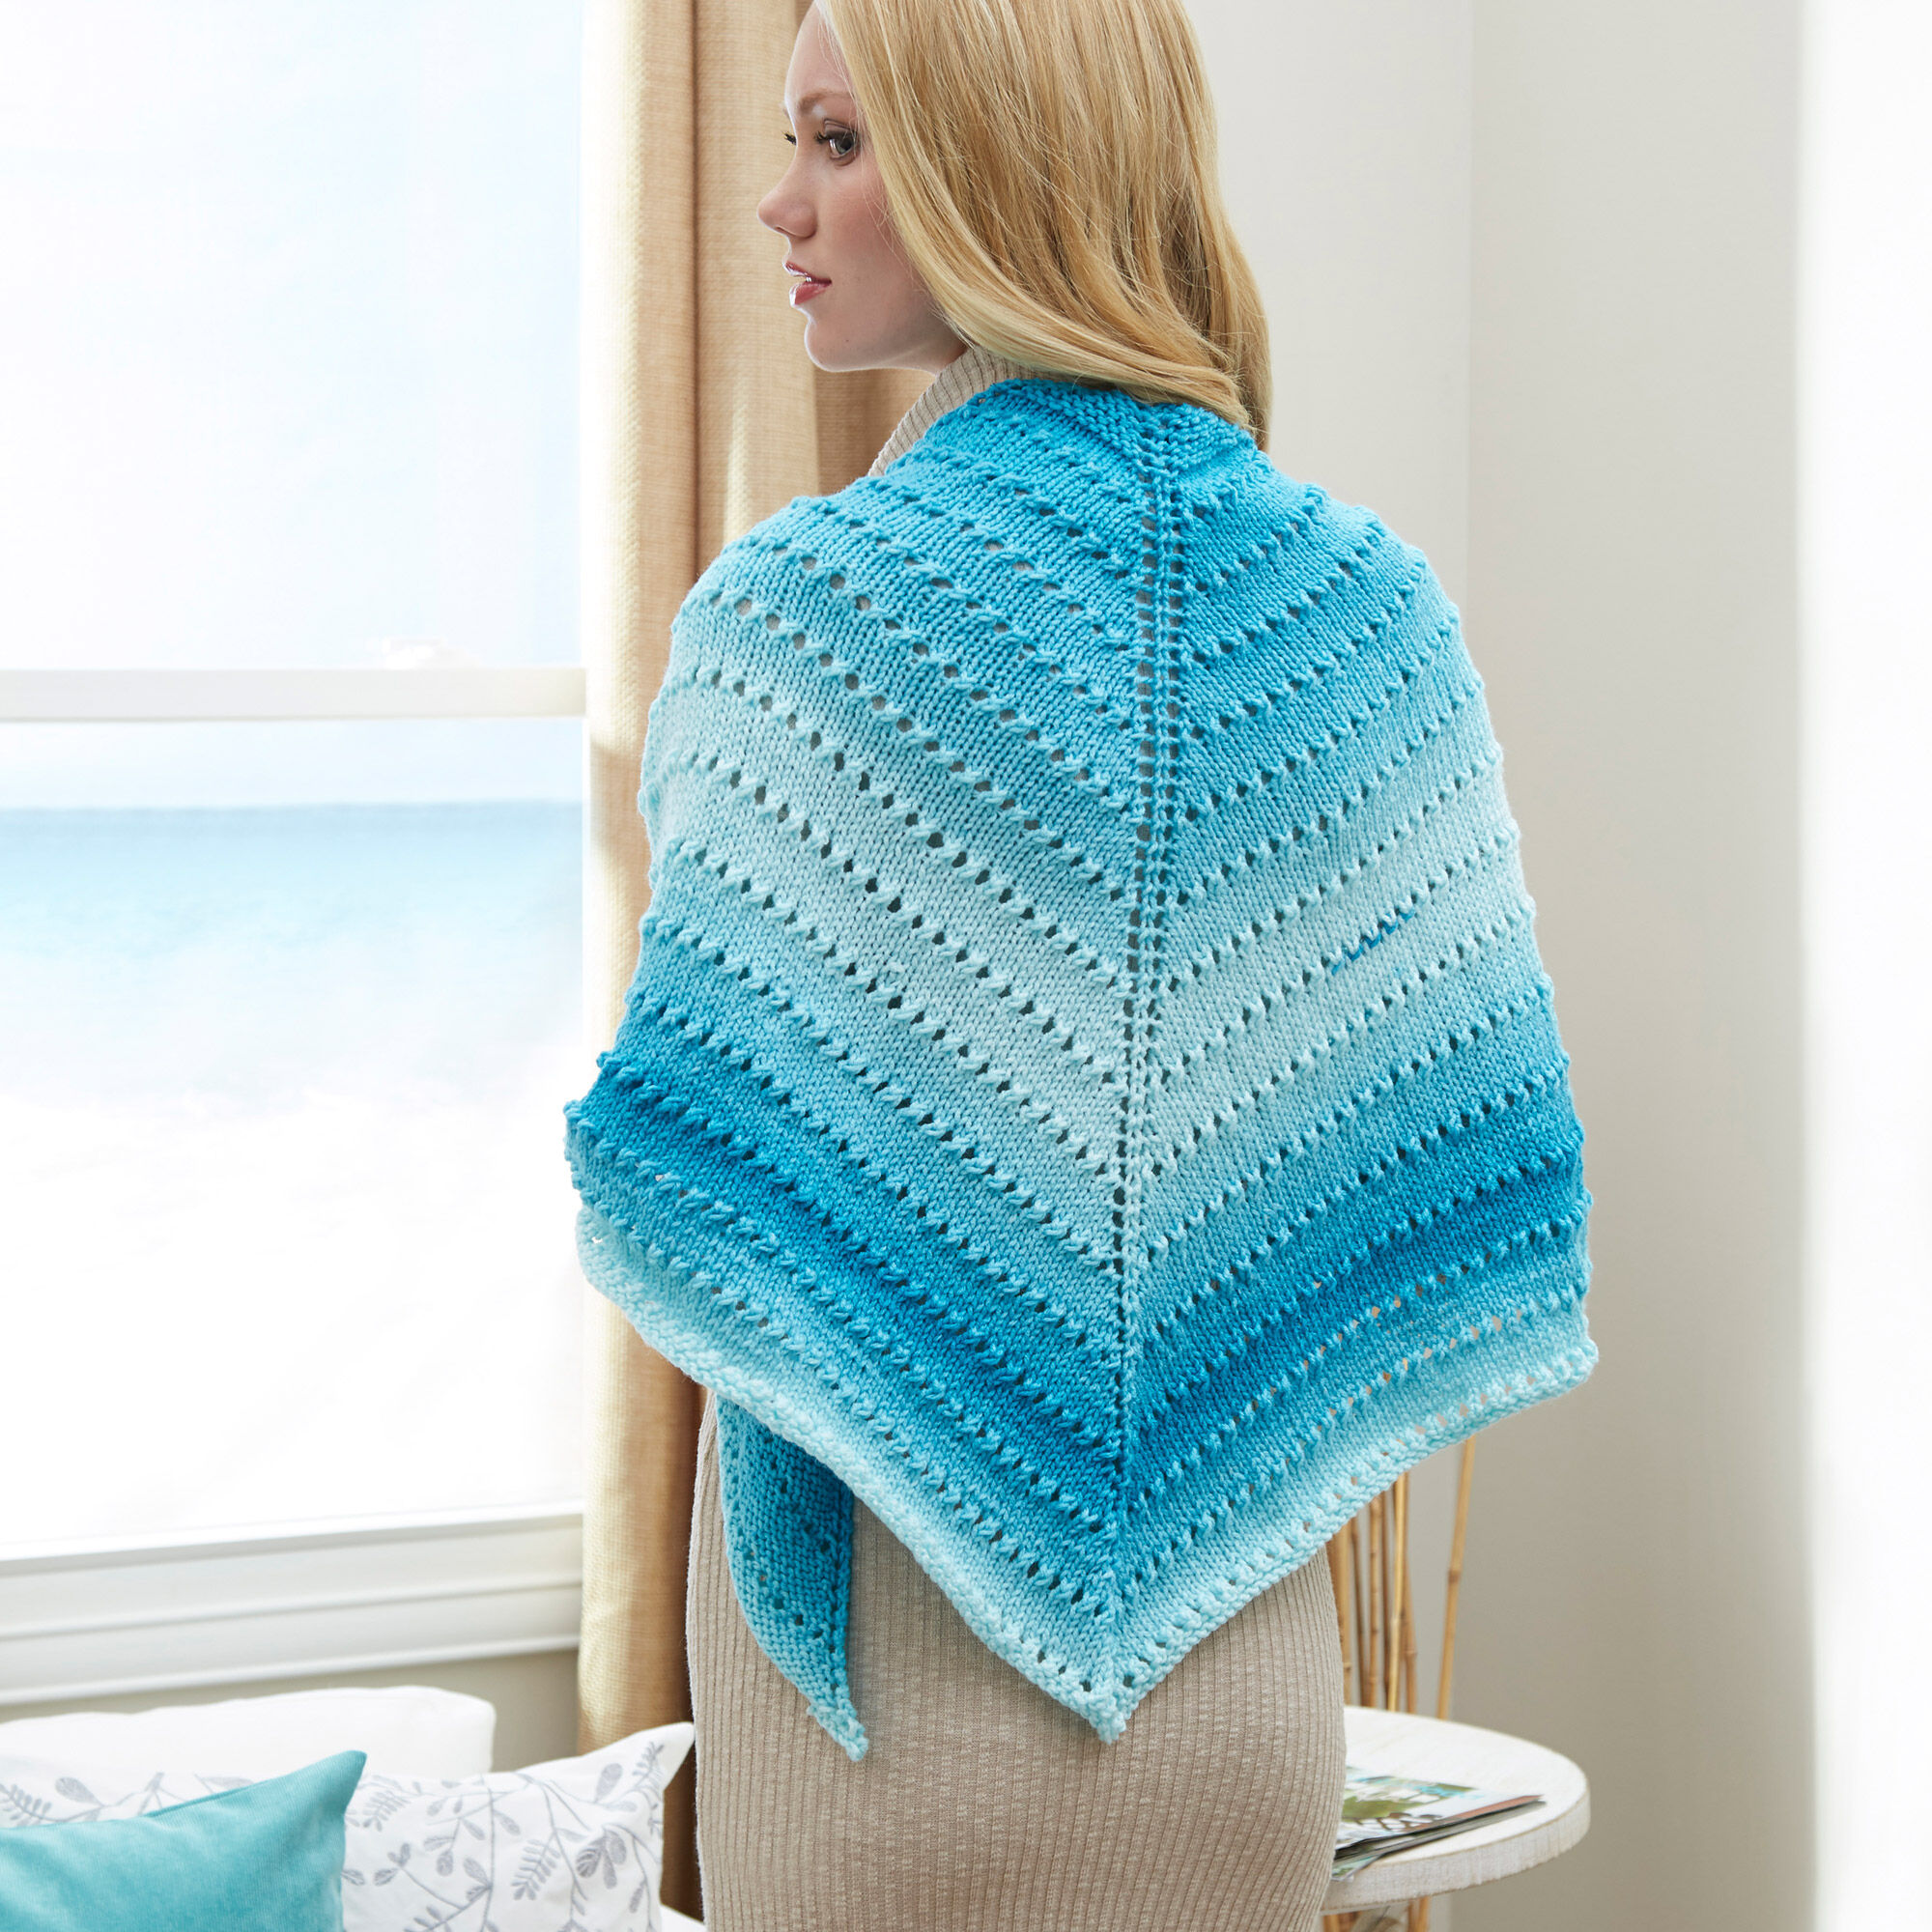 PRINTED KNITTING INSTRUCTIONS-BABY EASY LACE SHAWL EASY KNITTING PATTERN